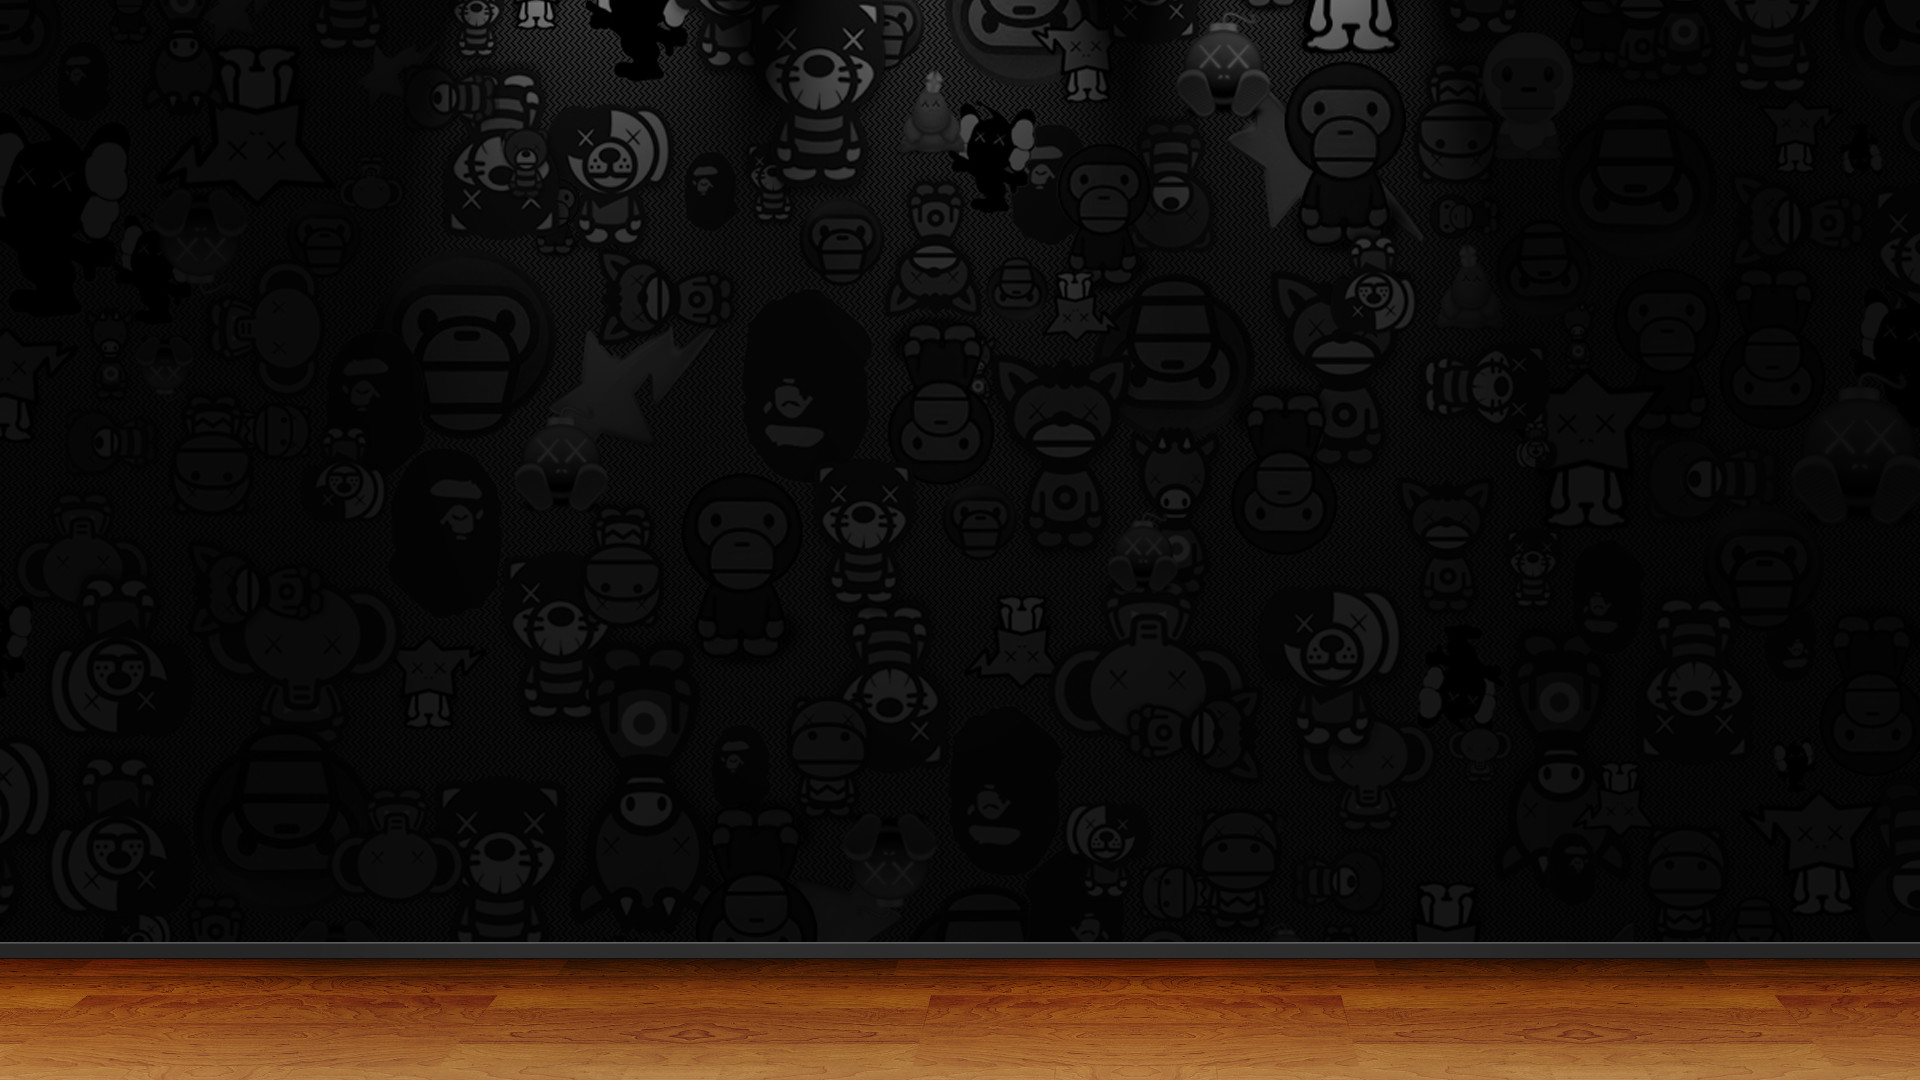 1920x1080 11 HD Bape Desktop Wallpapers For Free Download